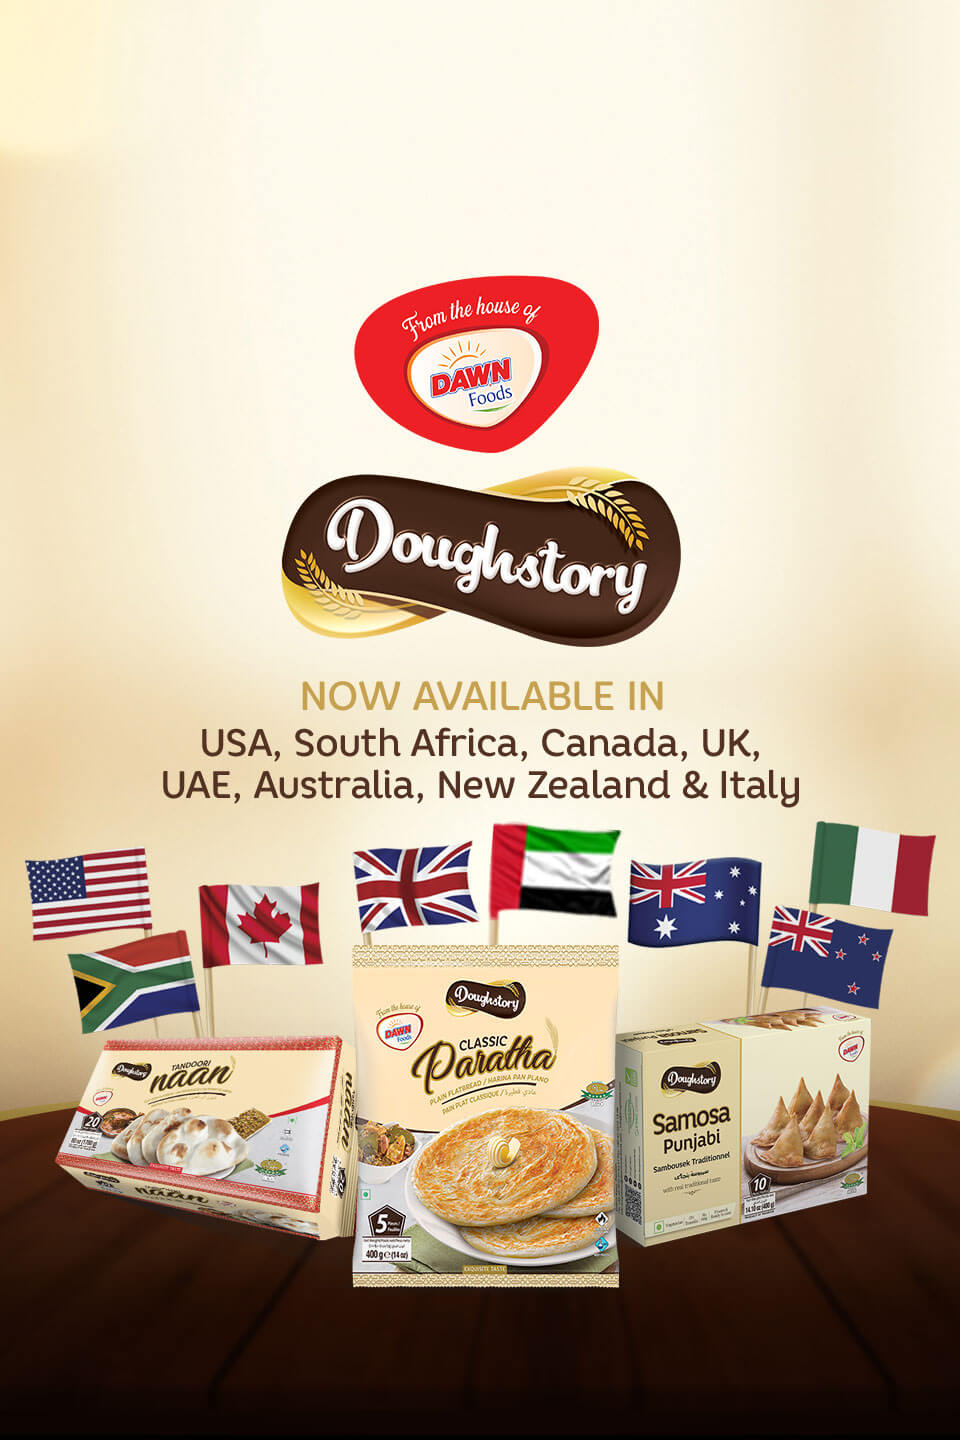 Doughstory is now available in USA, Canada, UK, Australia, New Zealand, South Africa, Italy and UAE